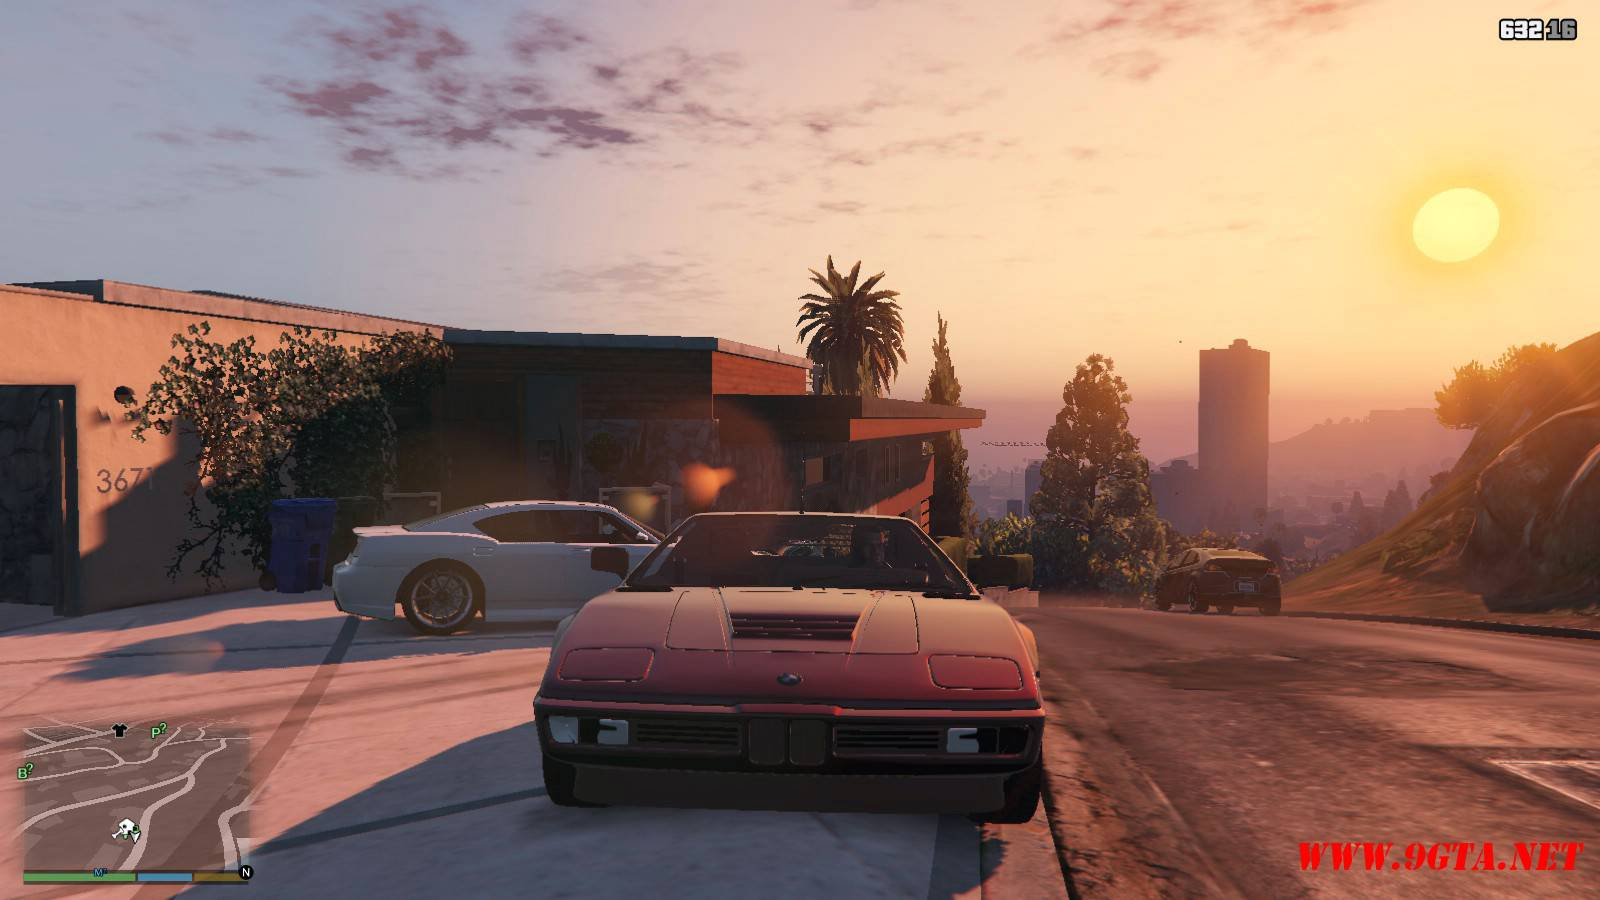 1981 BMW M1 v2.0 Mod For GTA5 (5)